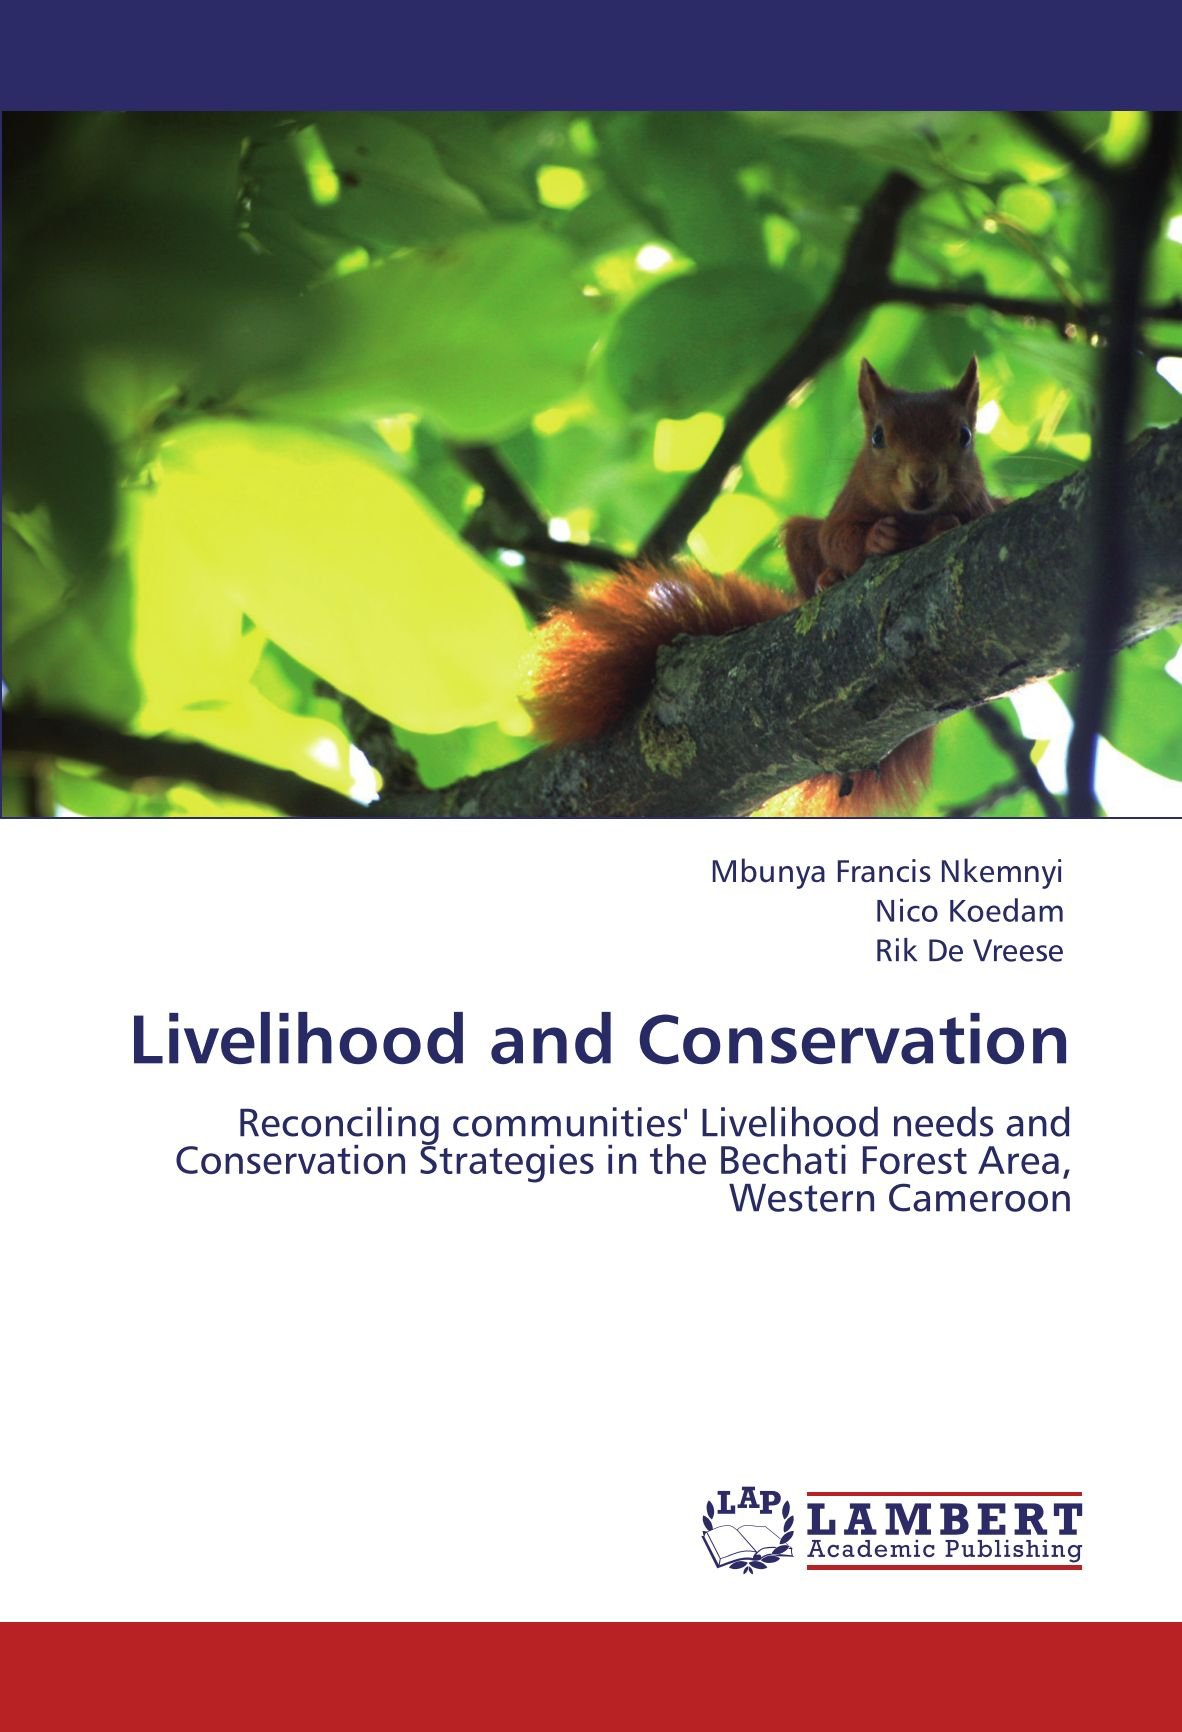 Livelihood and Conservation: Reconciling communities' Livelihood needs and Conservation Strategies in the Bechati Forest Area, Western Cameroon pdf